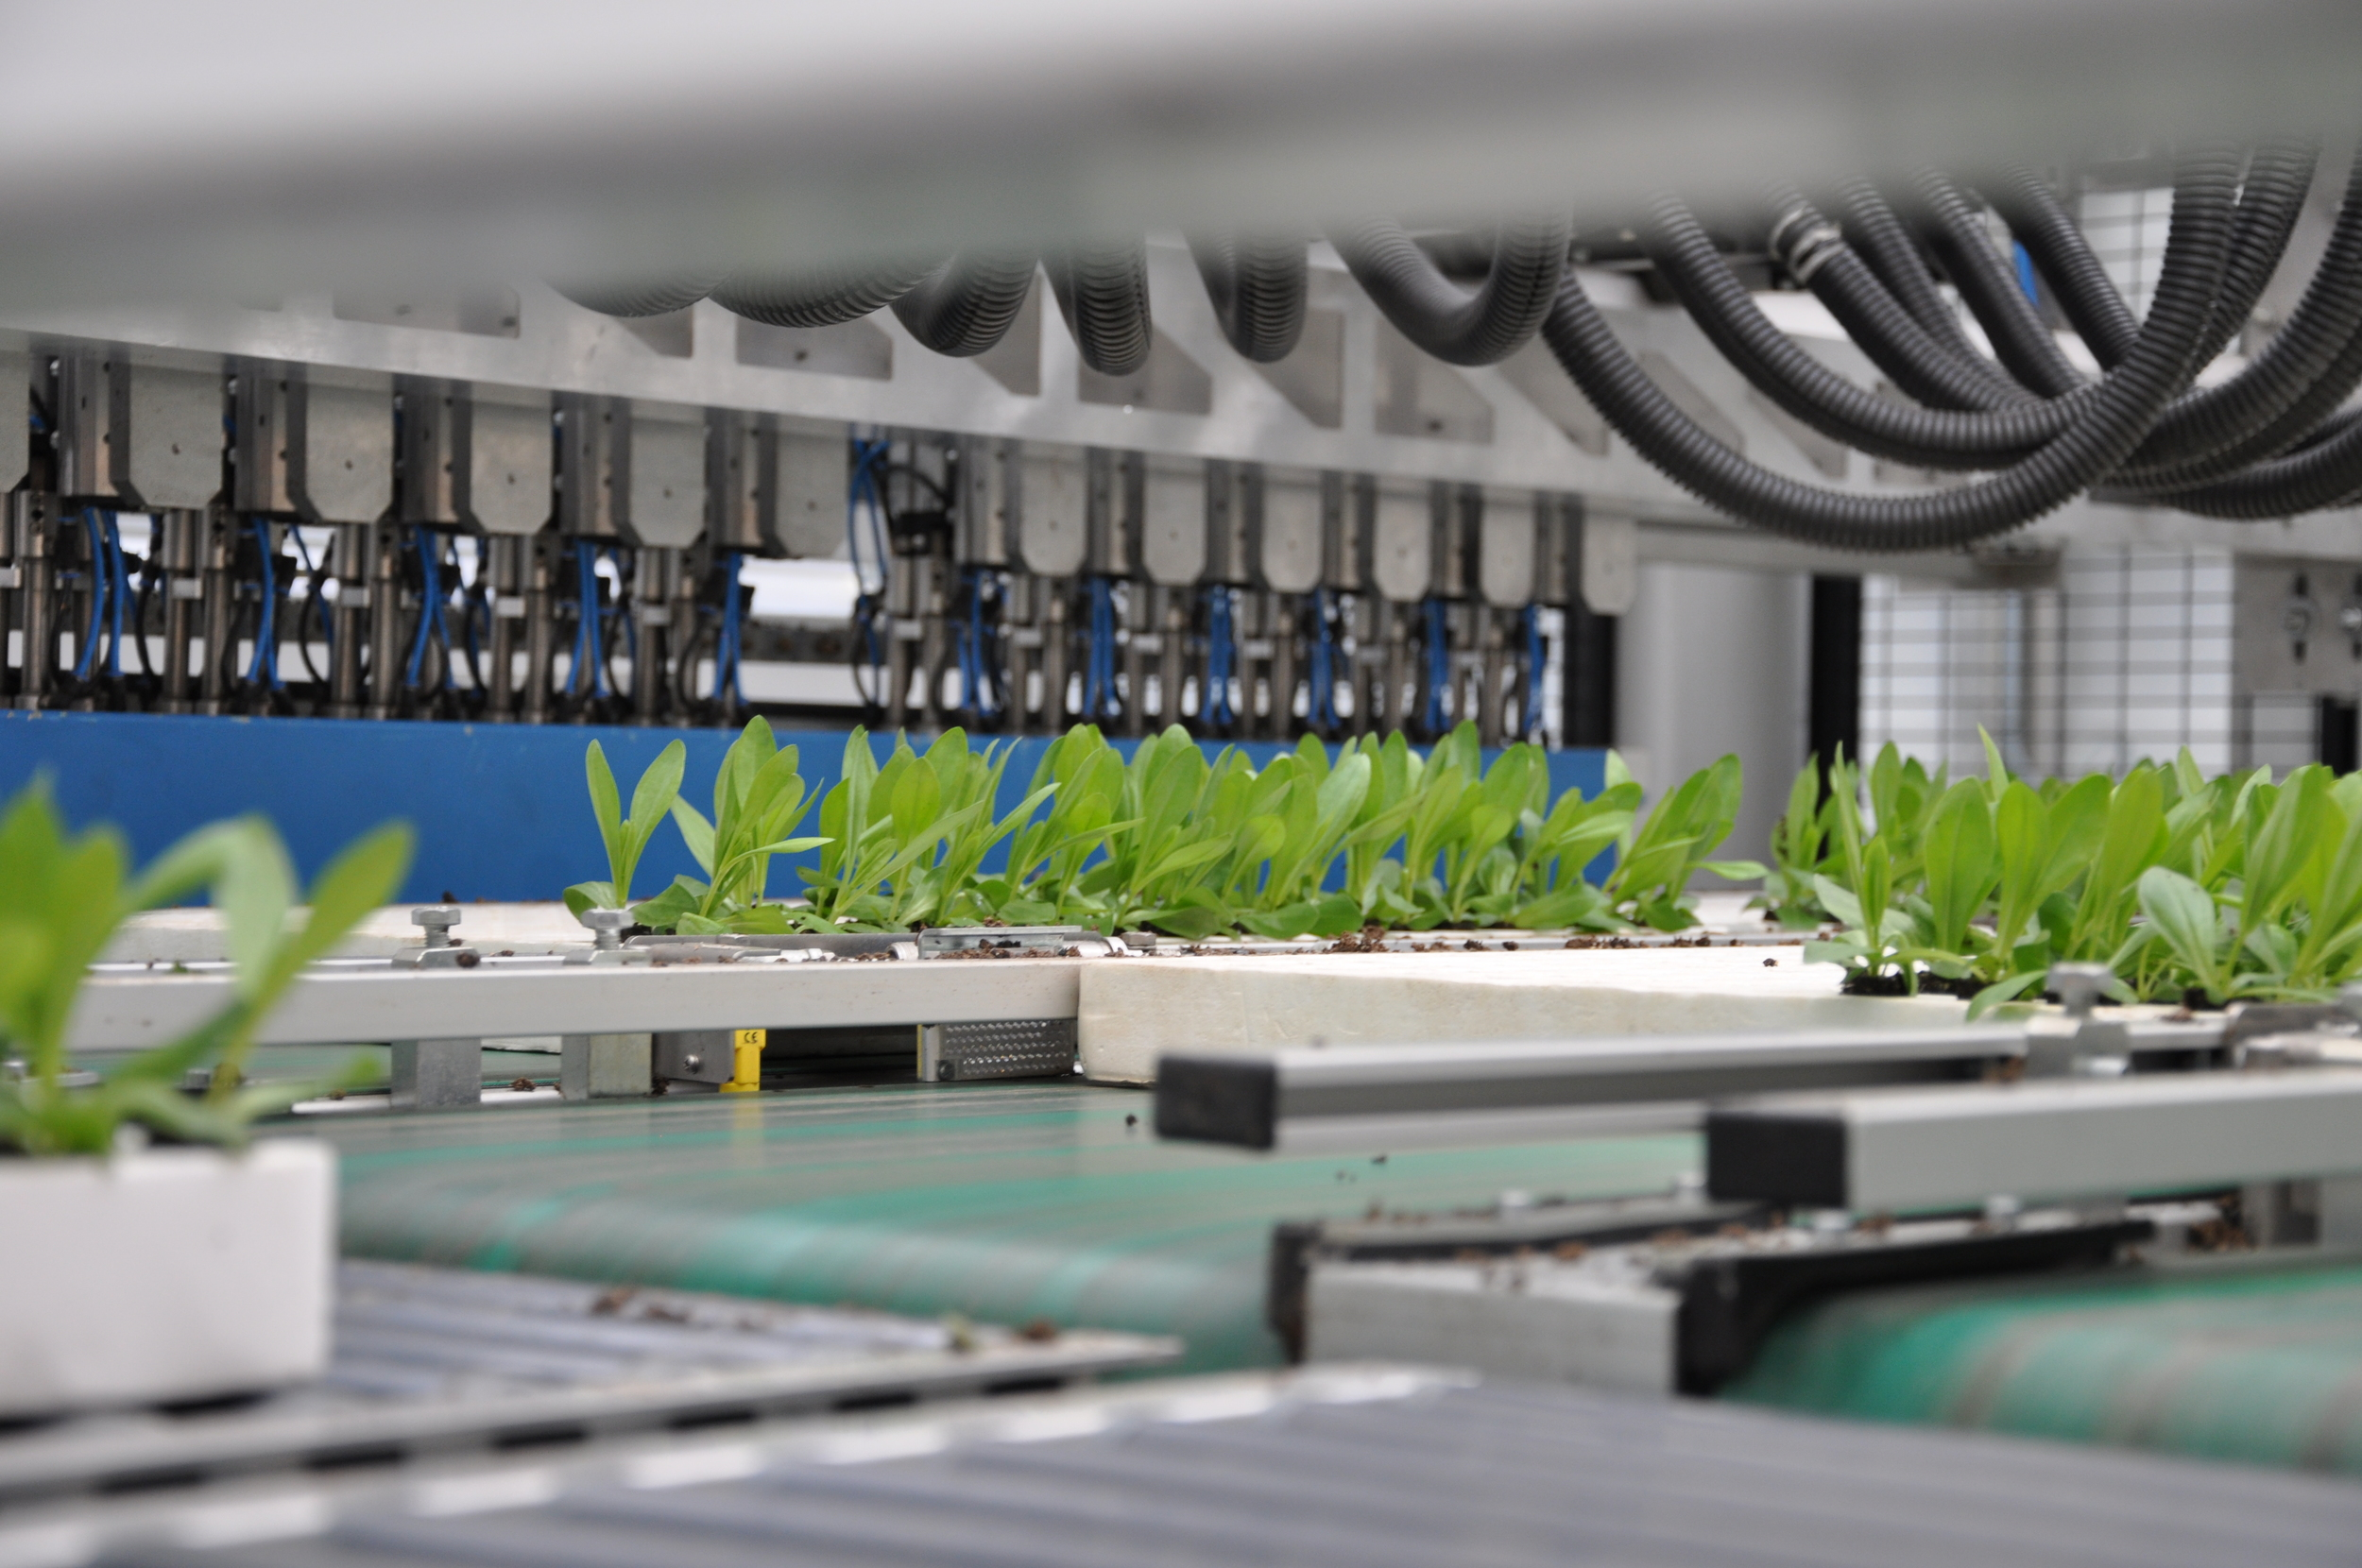 Plant seedlings being sorted by robot